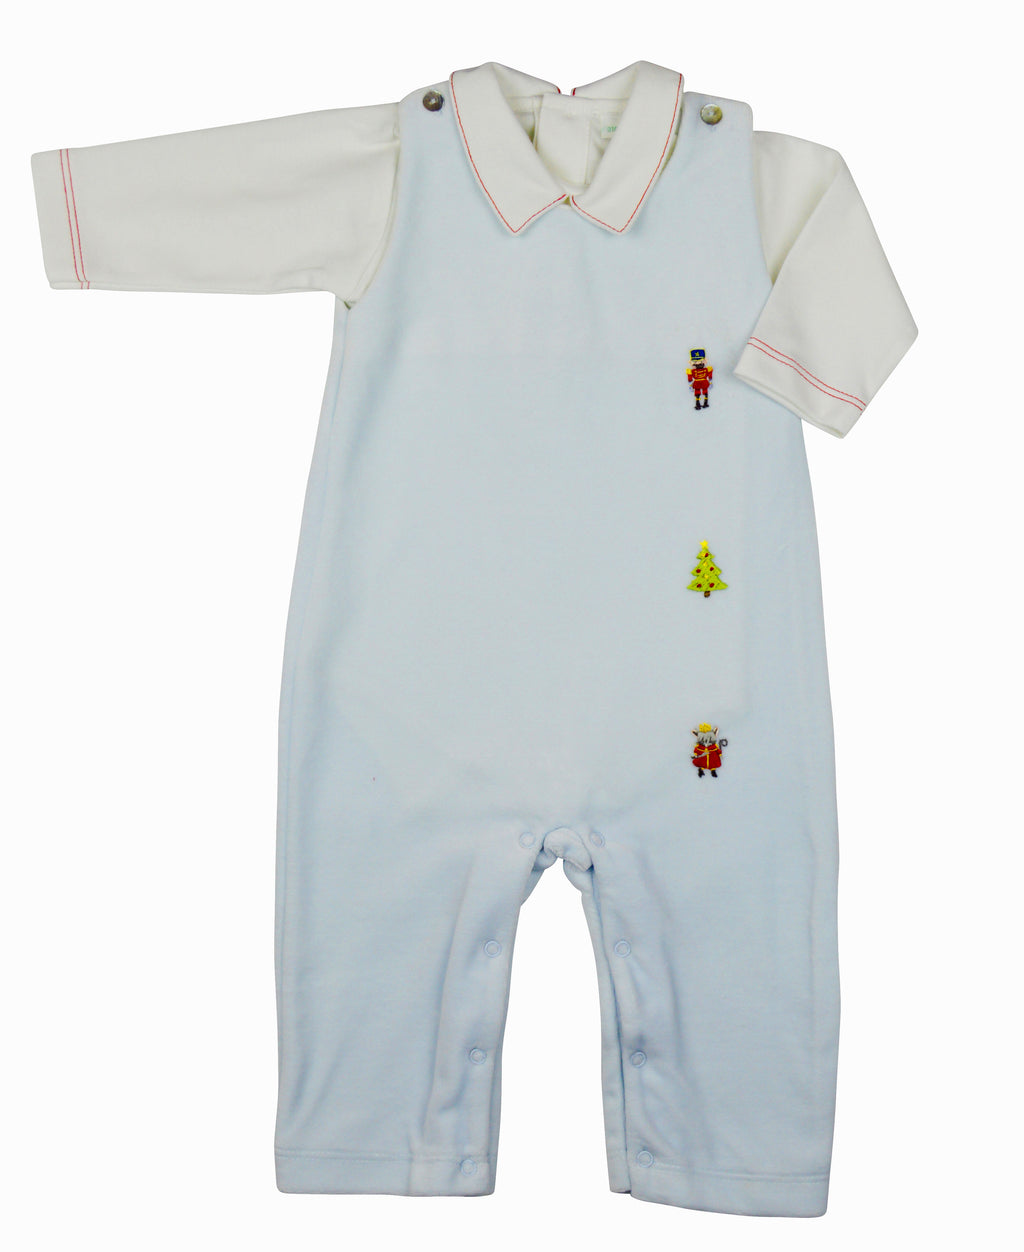 Nutcracker Velour overall  by Baby Threads - Little Threads Inc. Children's Clothing